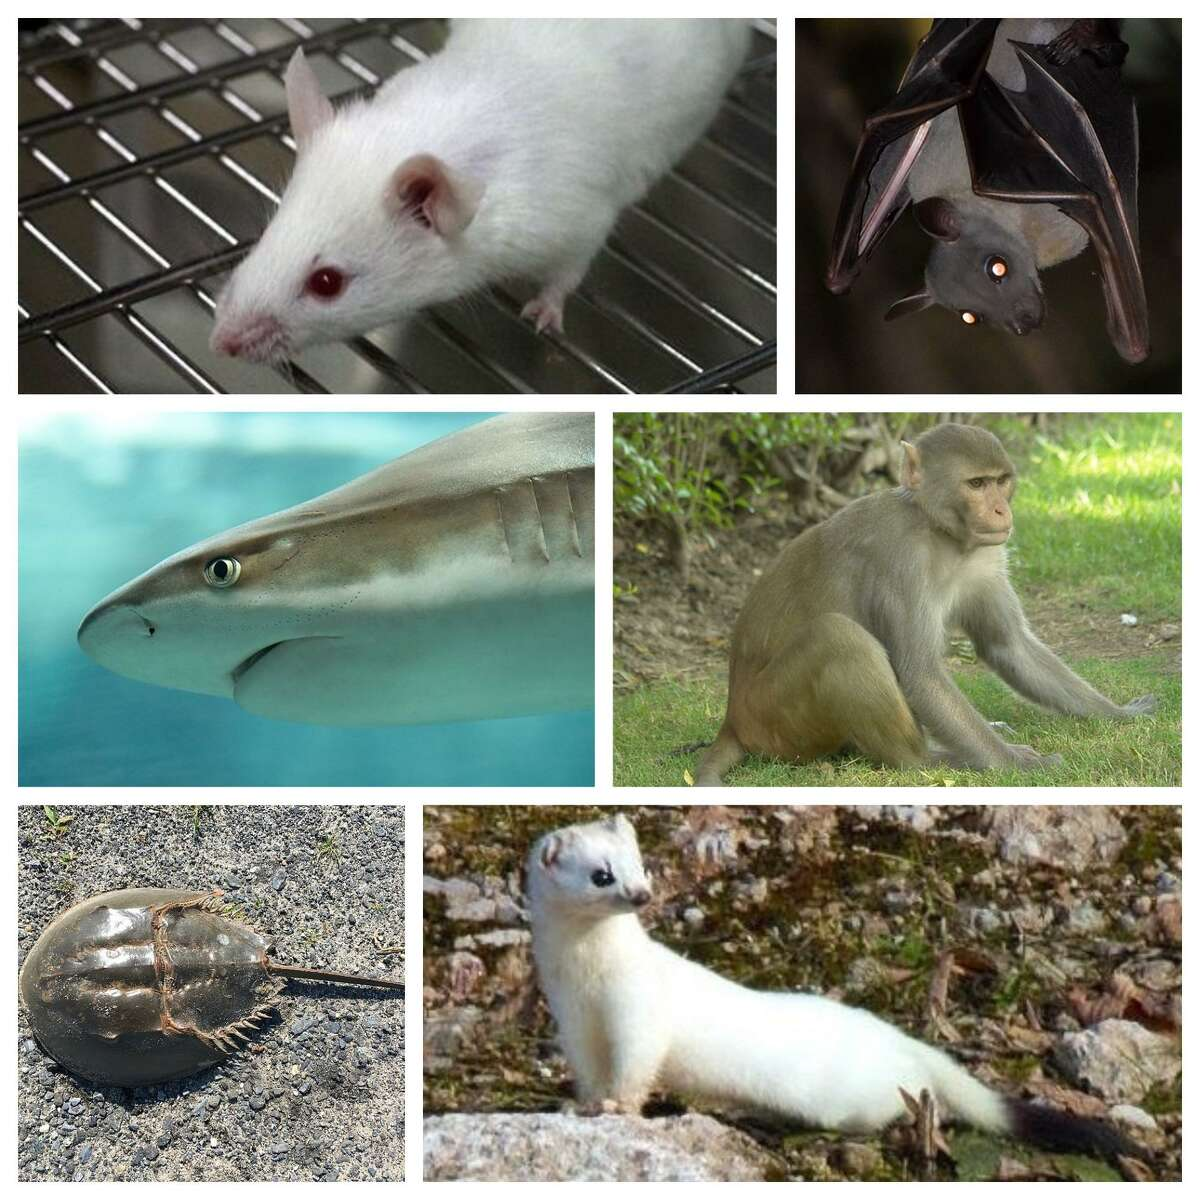 Six animal species being threatened by the COVID pandemic. Before we get to the meat of the matter, if you're curious about the ethics of animal testing (a long-term and complex issue about which many people feel strongly) check out this piece from Stanford University examining both sides of the debate. With that preface stated, here are six animals impacted by the pandemic itself, and the attempt to cure and treat COVID-19: MinksThere have been few solid cases of animal-to-human transmission of the coronavirus, and minks are one example. As a result, mink farms have culled their stock, resulting in the deaths of many thousands of minks around the world. In the United States, as many as 8,000 minks in three states died from COVID-19 infections after workers at farms passed the disease to the animals. Veterinarians said they do not believe humans were at risk from catching the virus from the animals in this case.